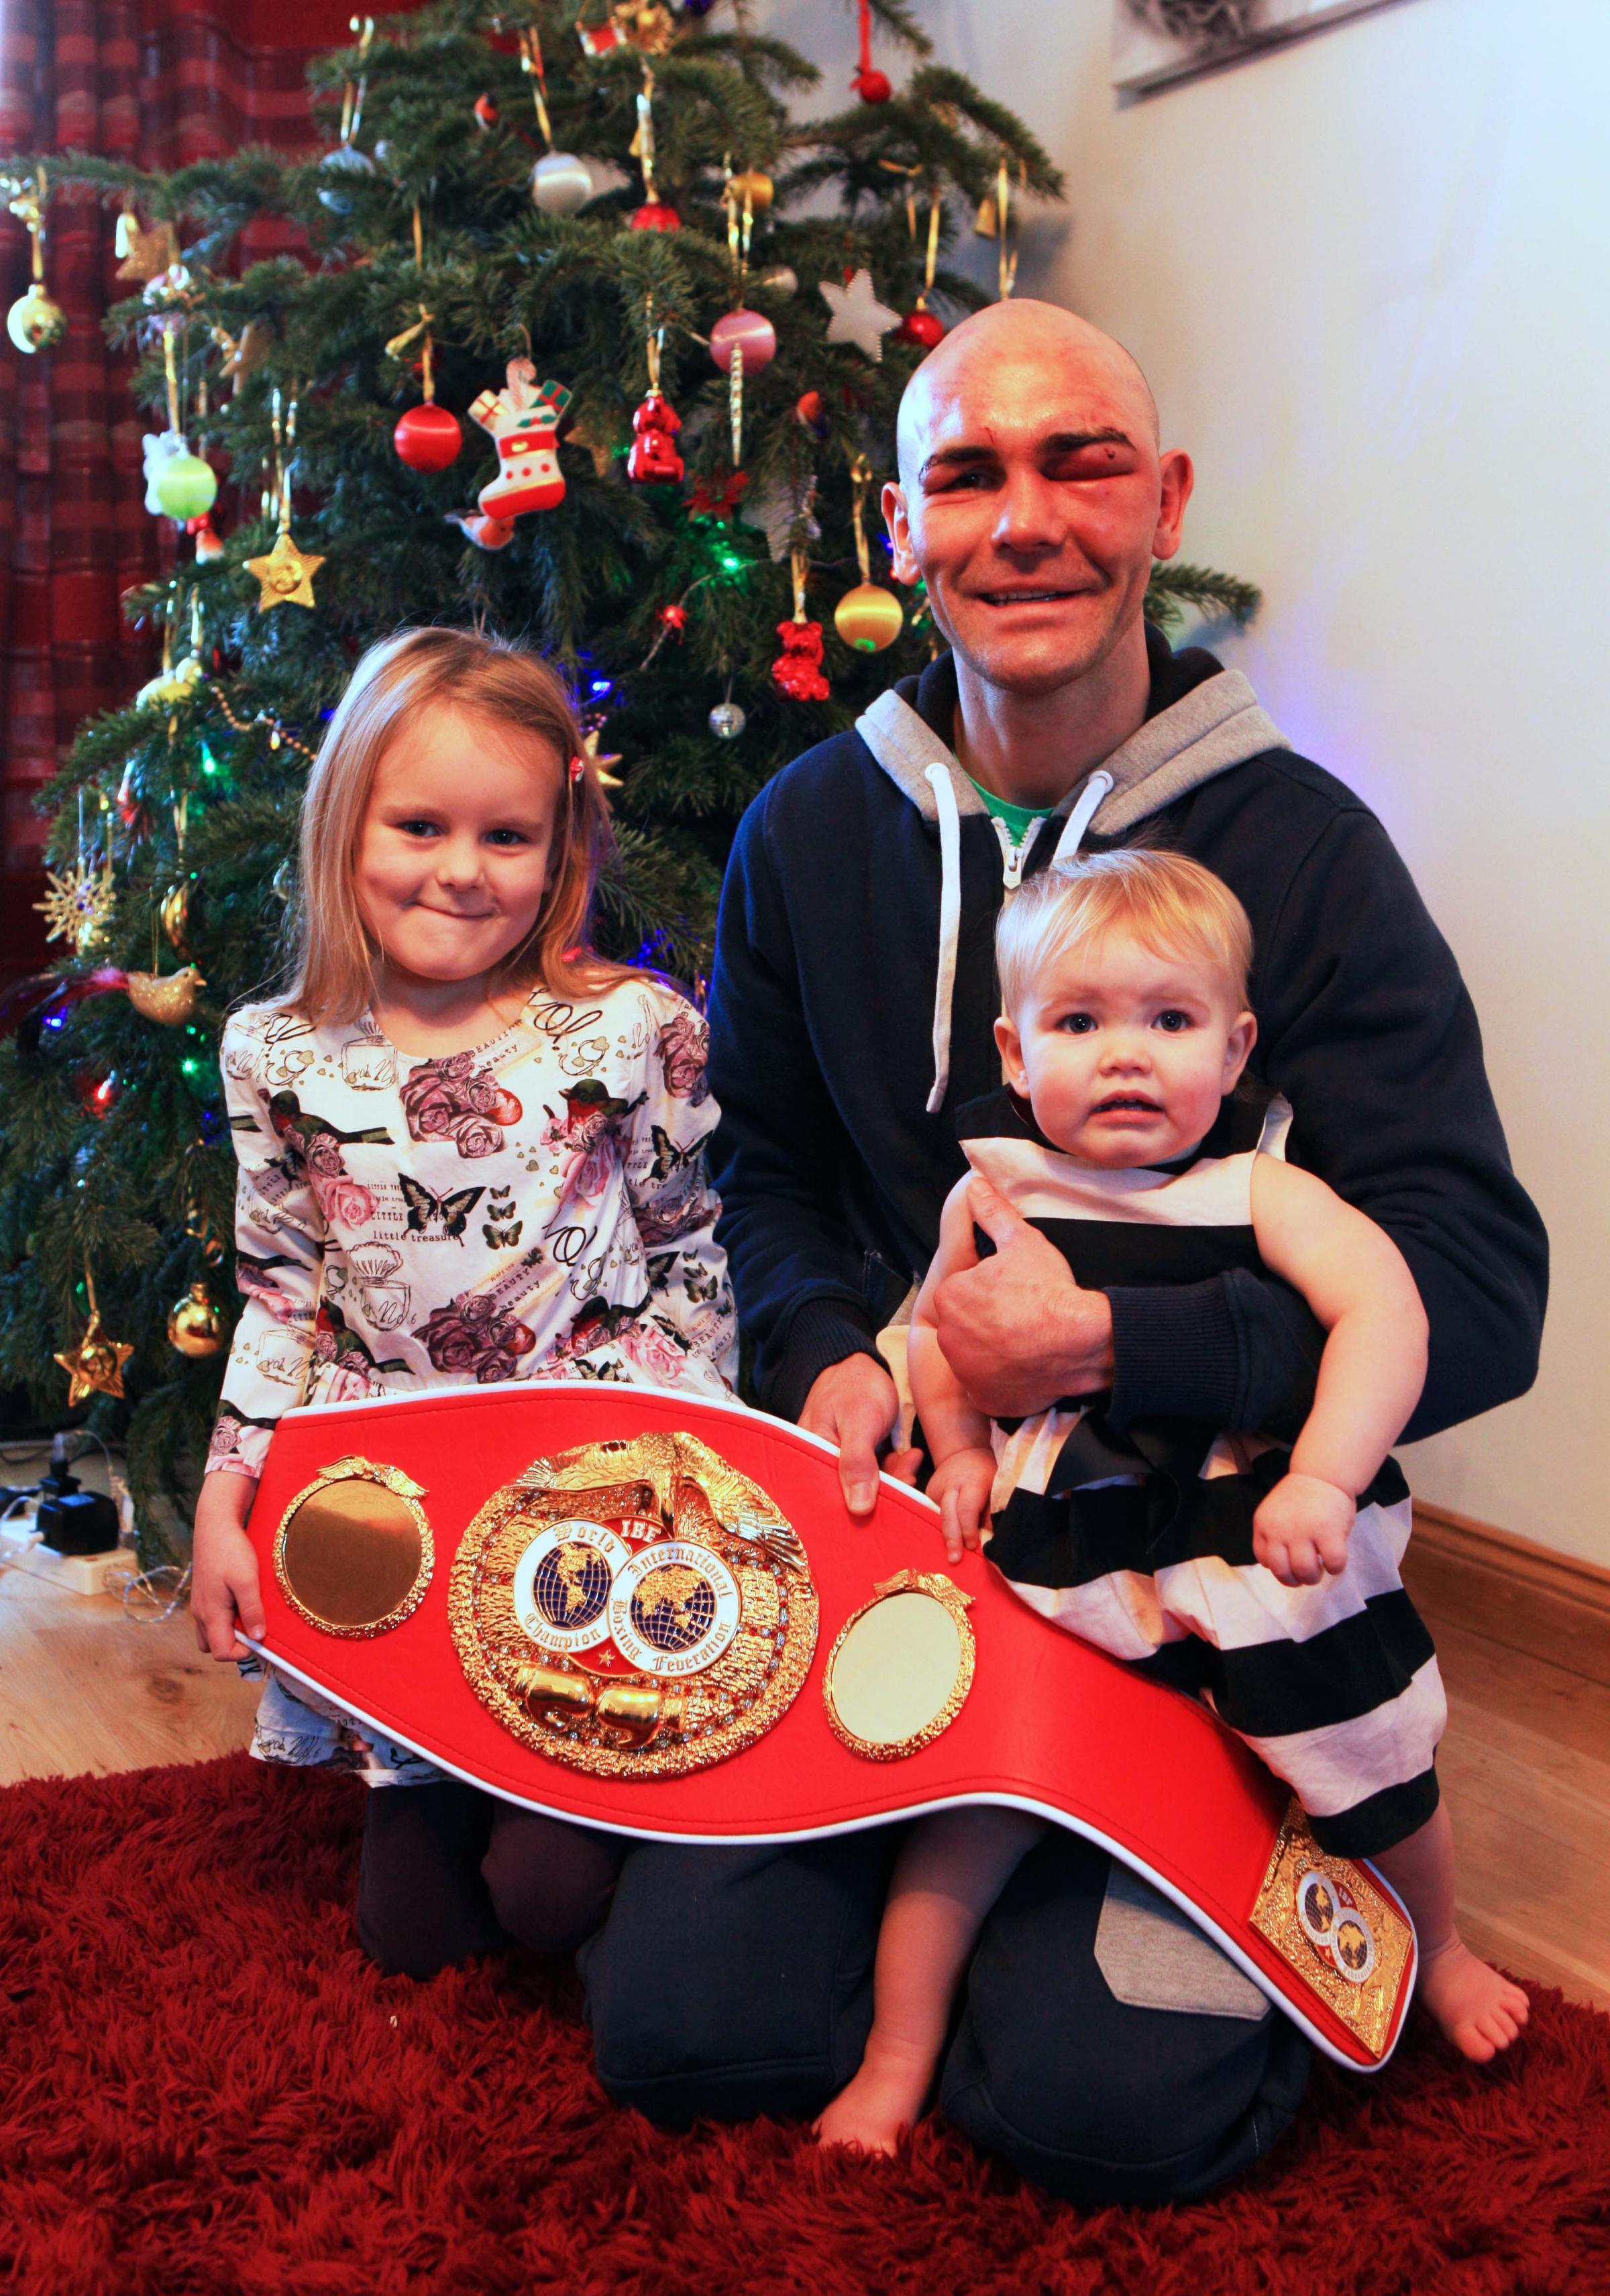 WINNING FEELING: Stuart Hall back home in Dalington after winning his fight last night. He is pictured with his children, Thea five, and 14-month-old Rio